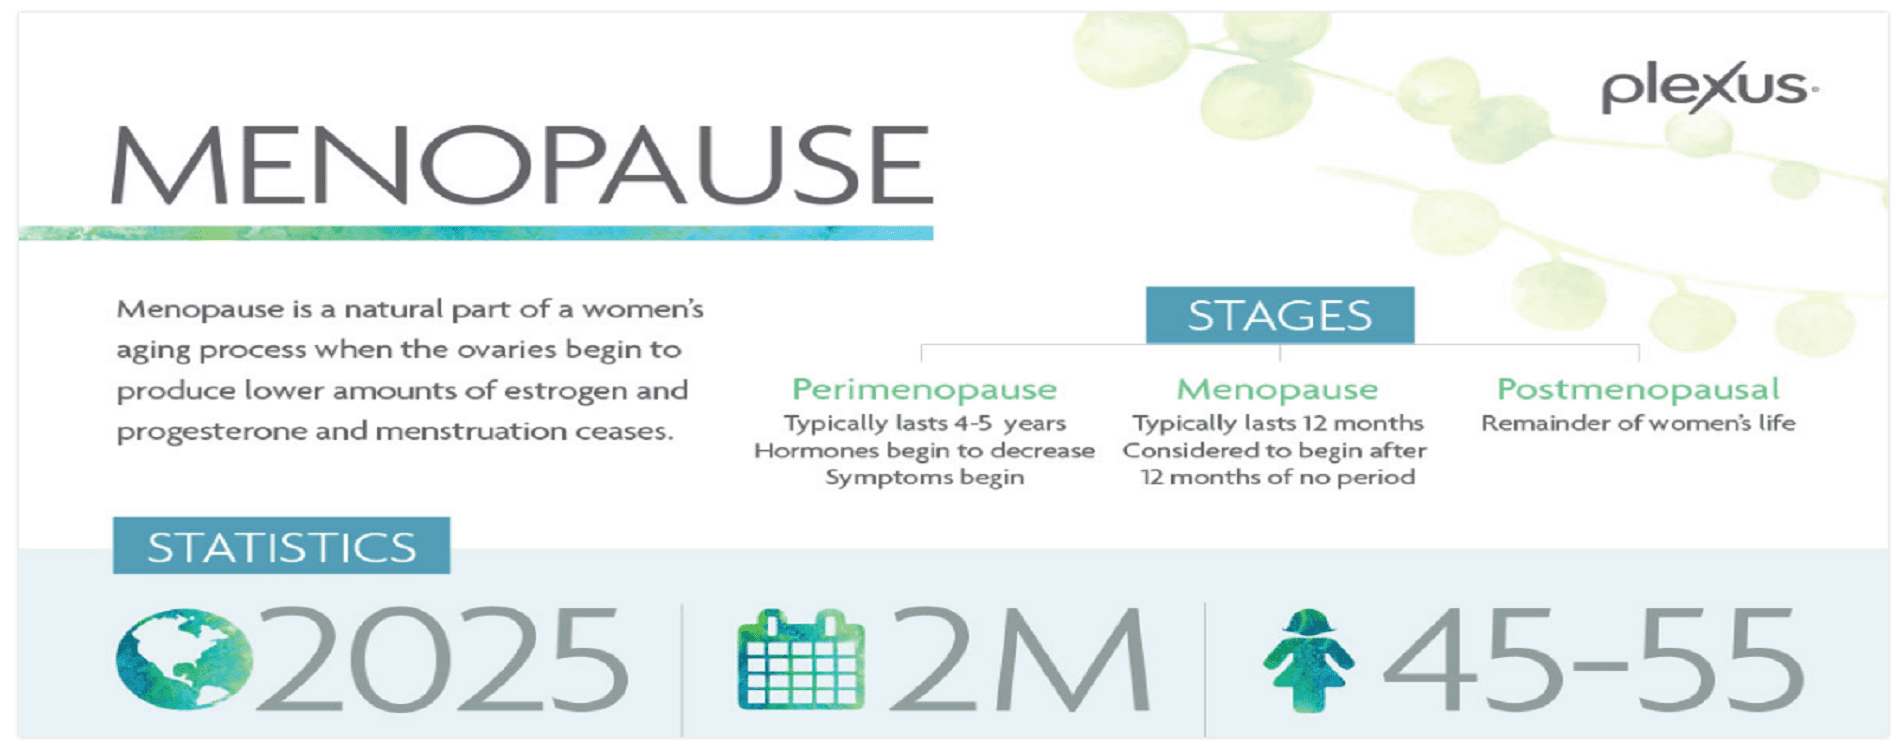 plexus xfactor plus can help with menopause